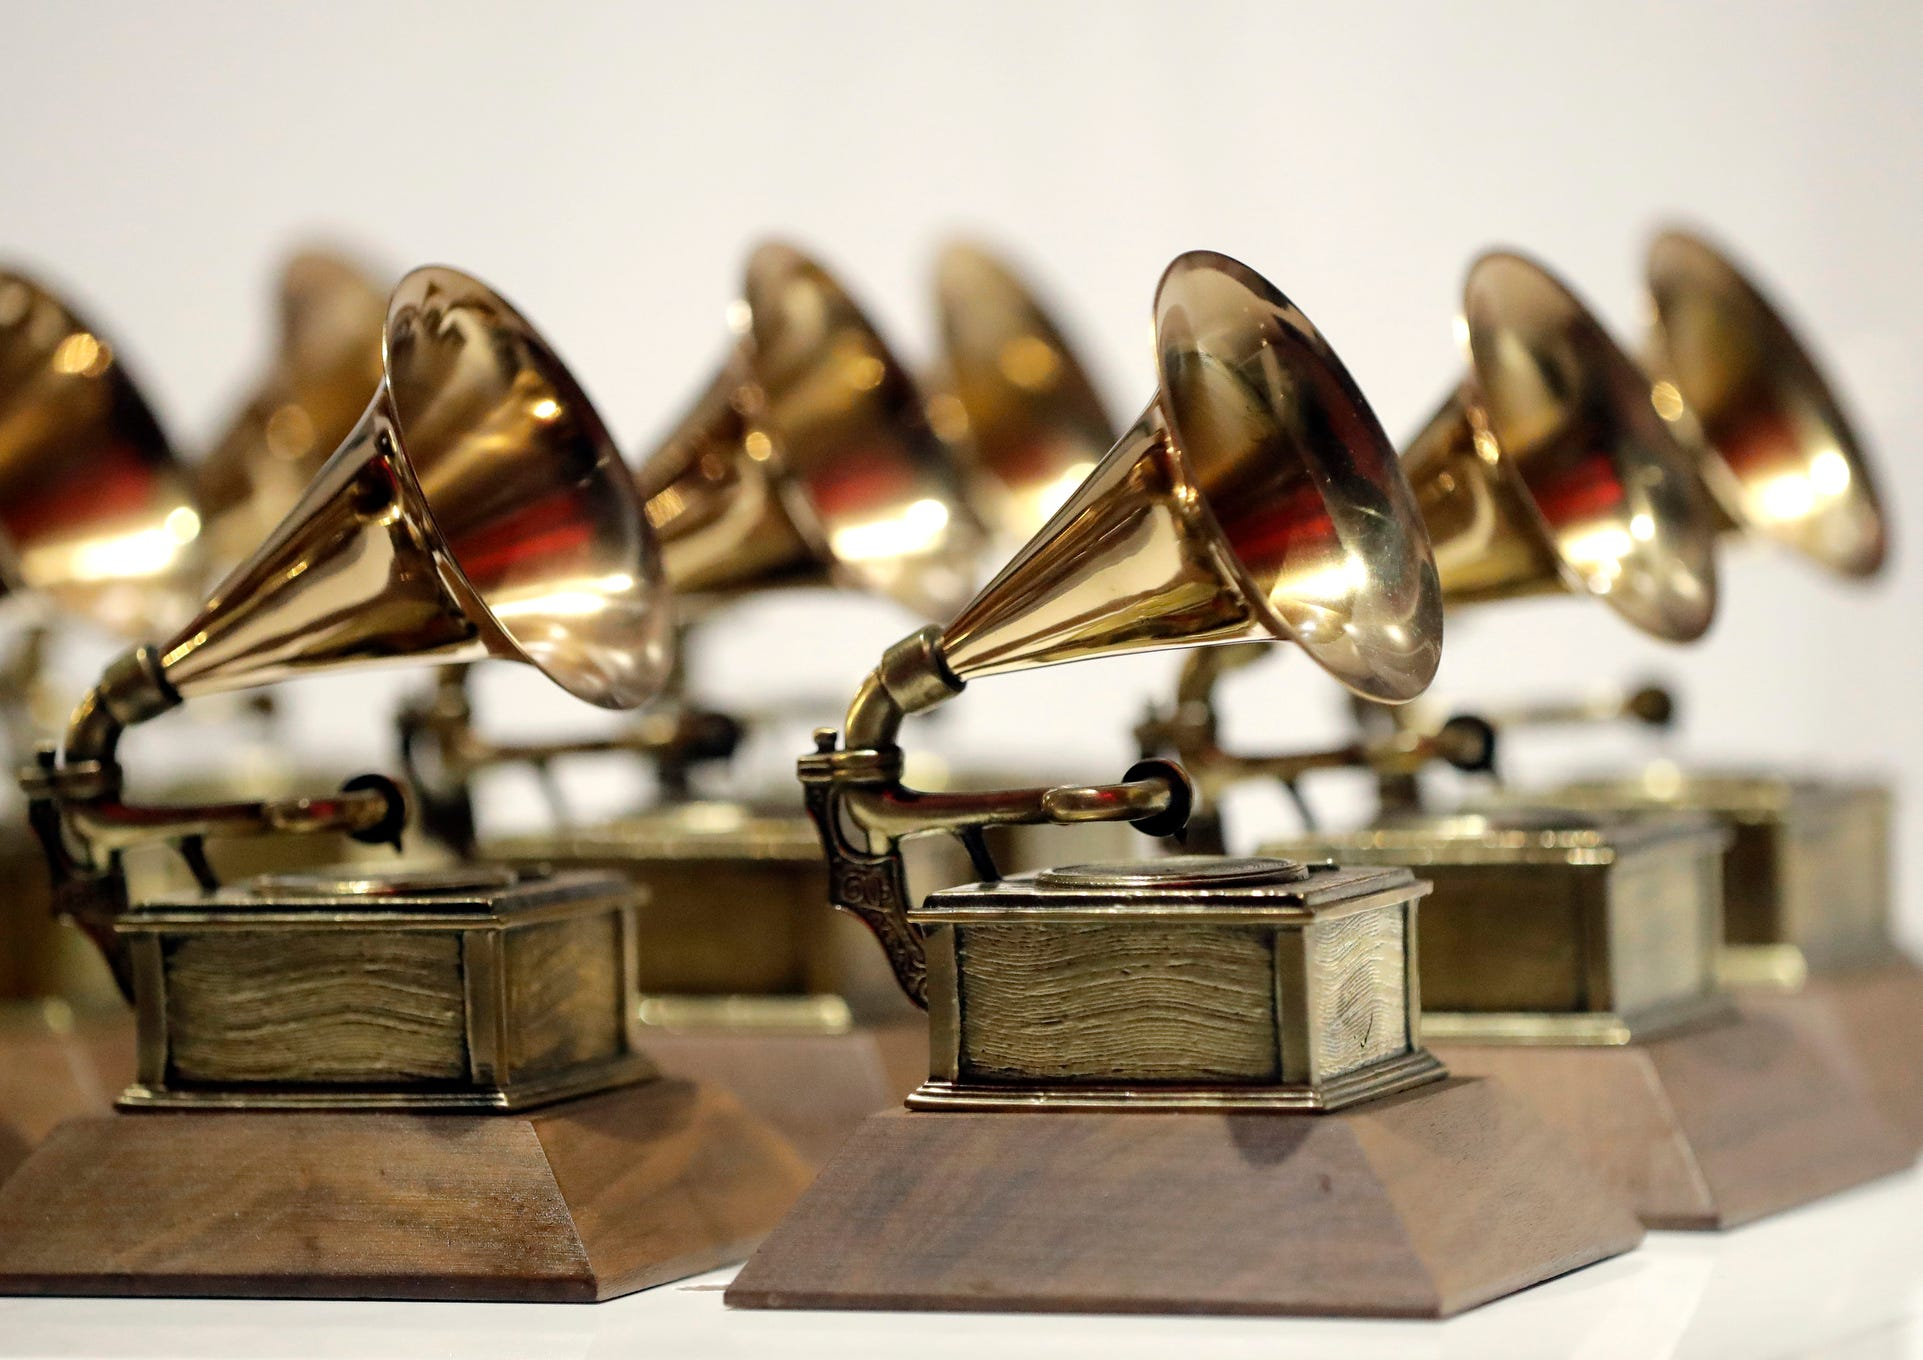 Ap Music Grammys A File Ent Usa Nj